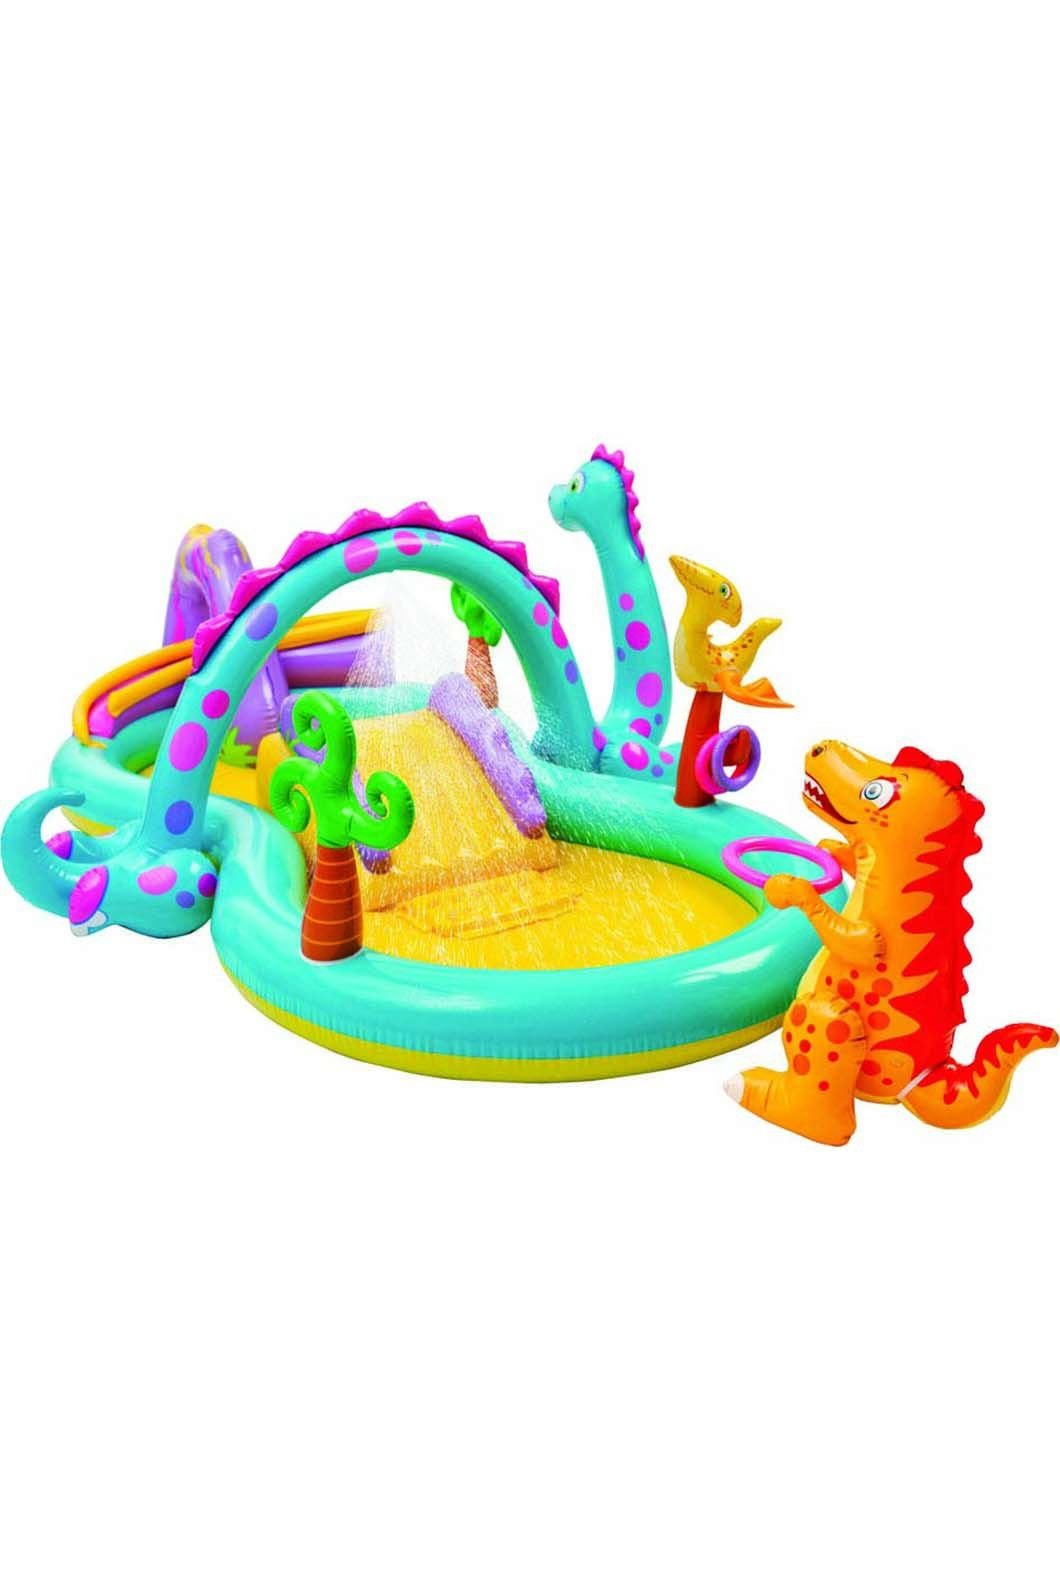 Intex Inflatable Dinoland Play Centre, None, hi-res